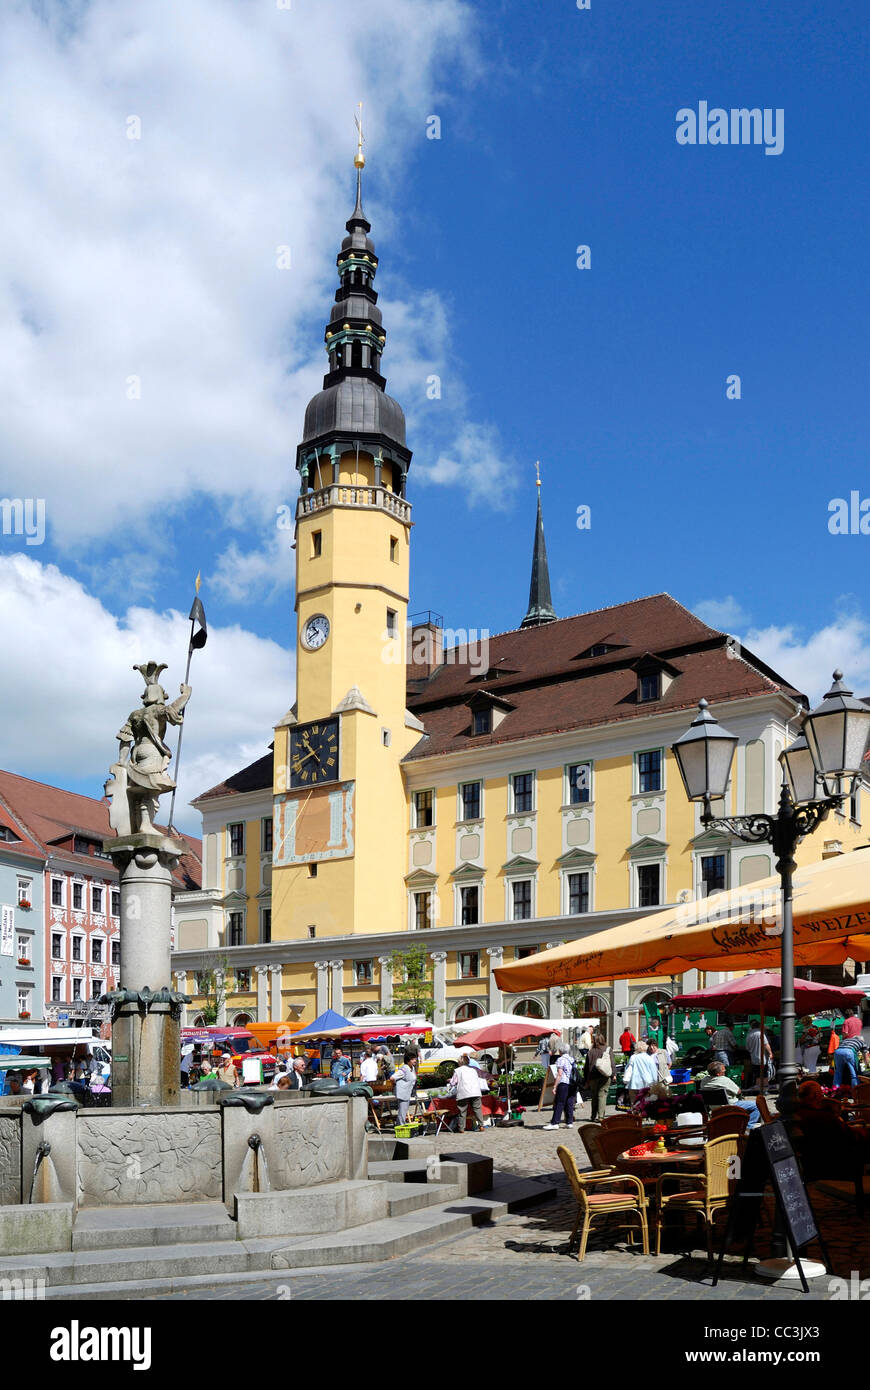 City hall of the historical old town of Bautzen. - Stock Image